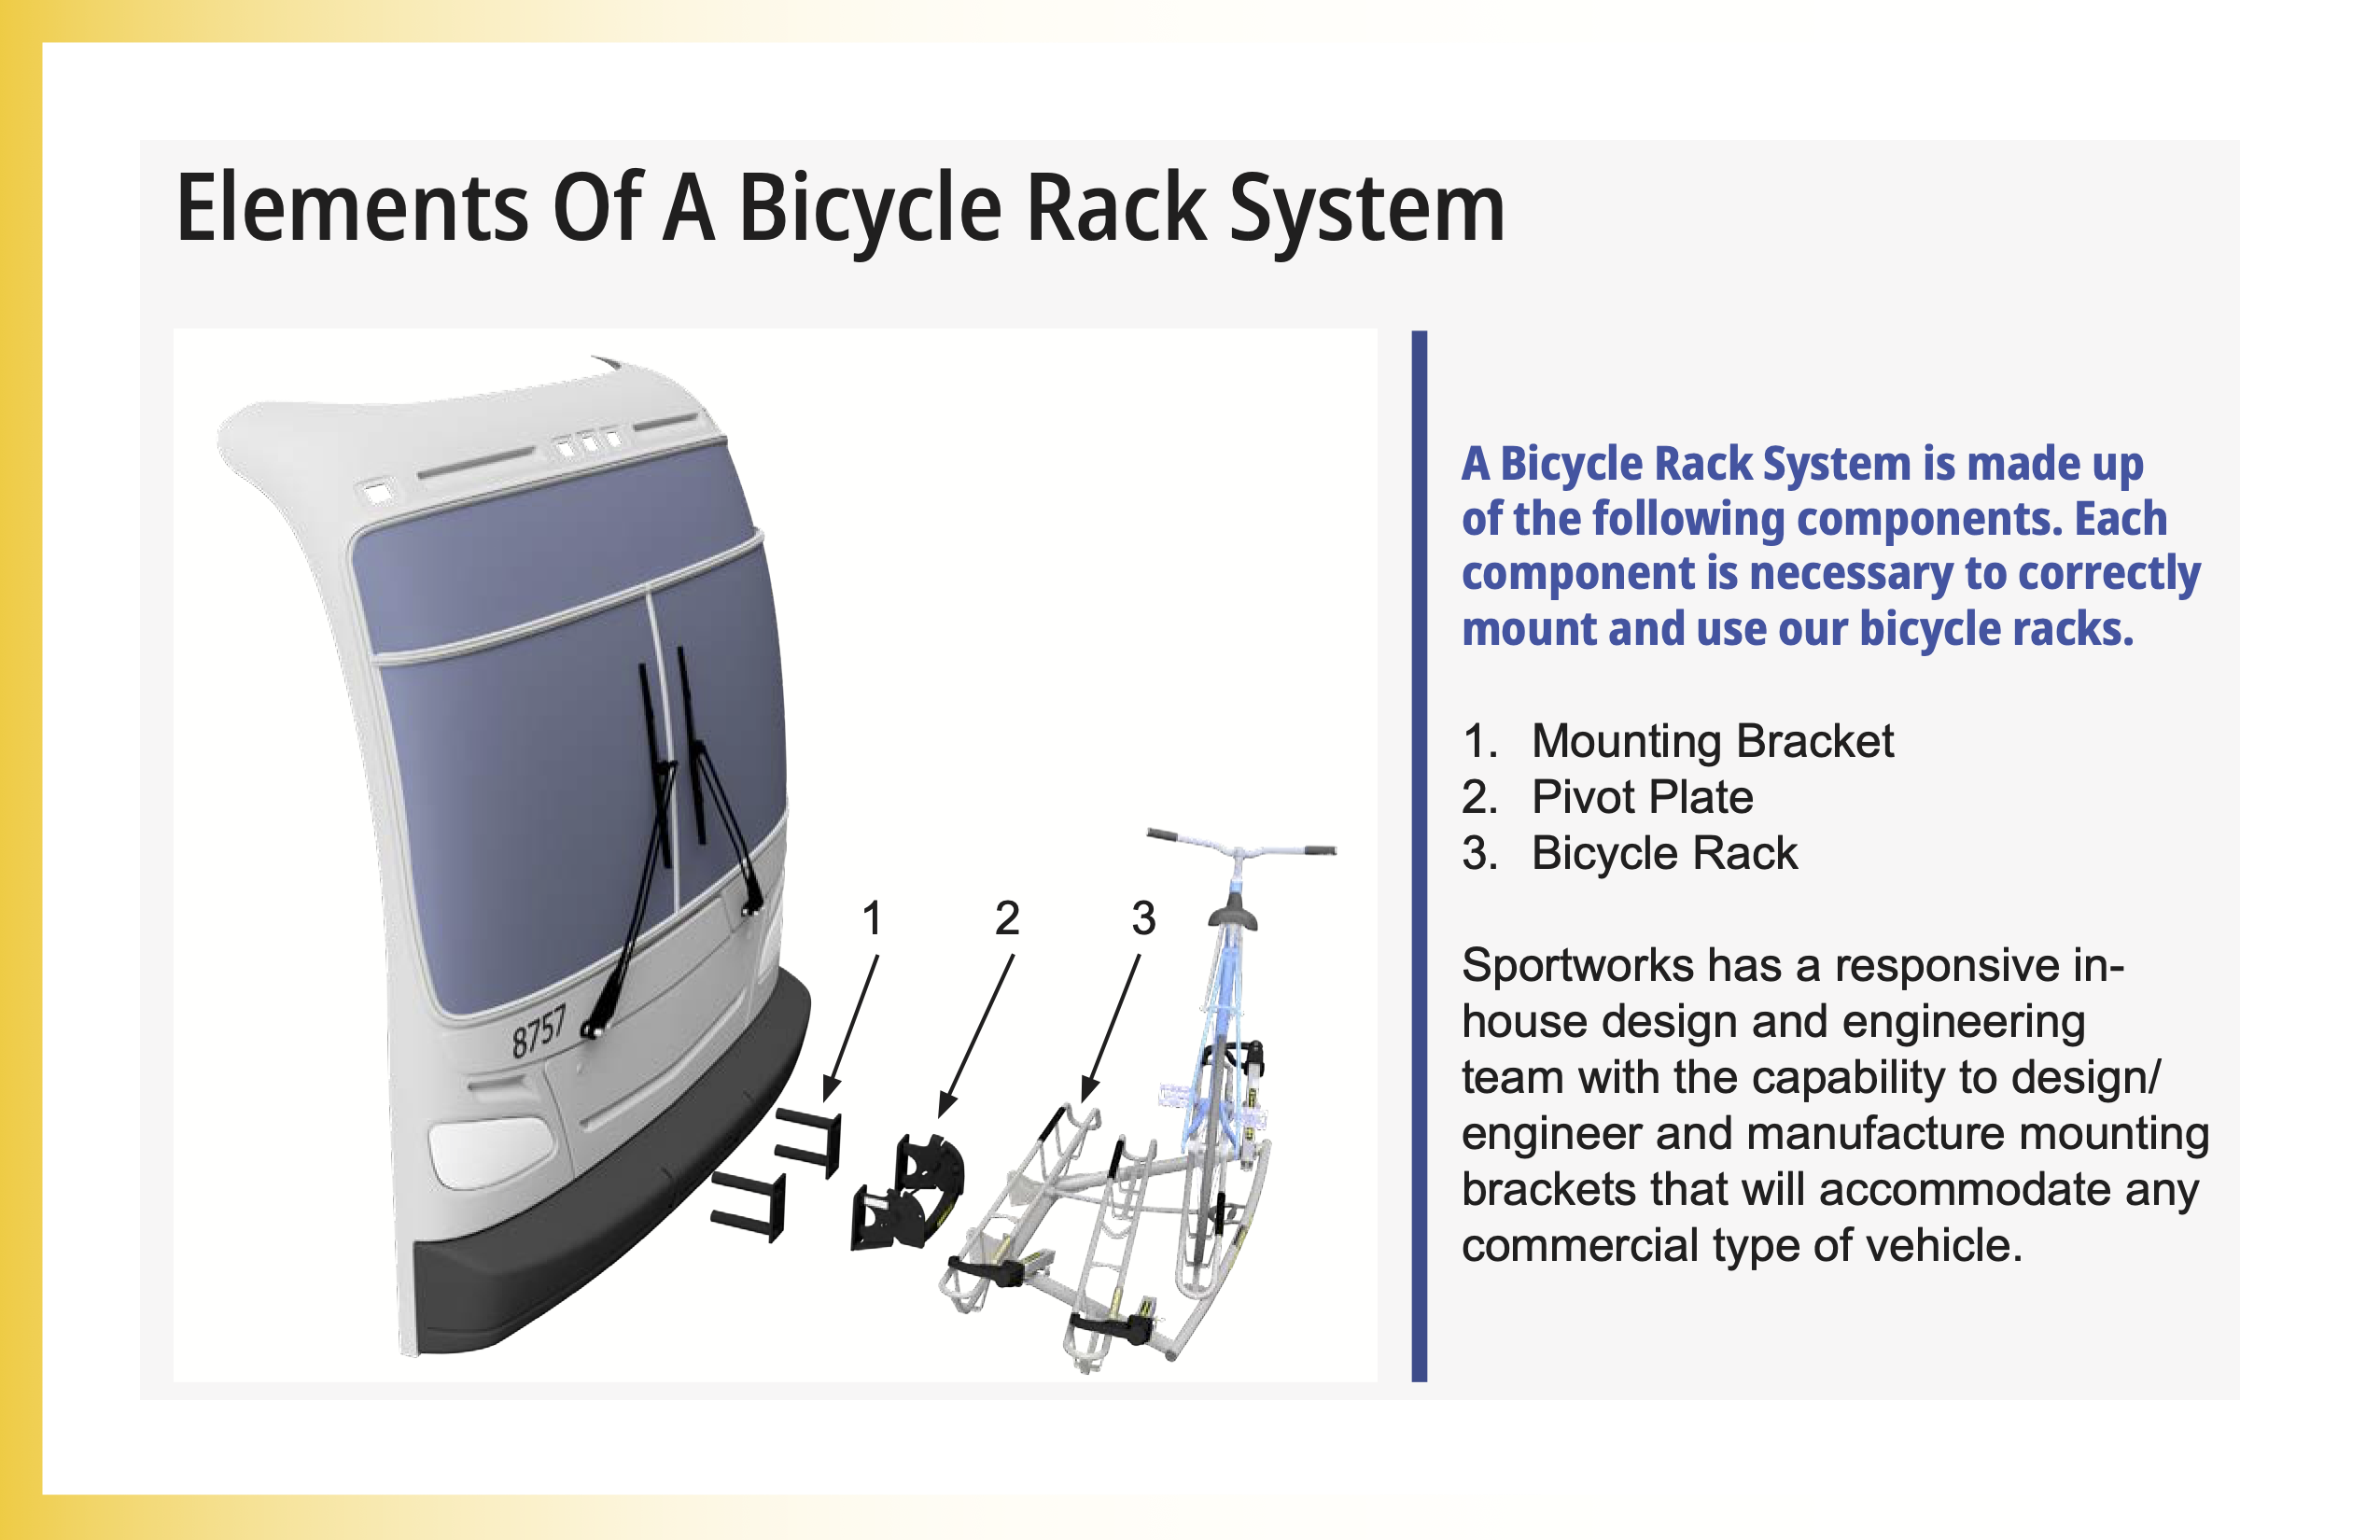 Elements Of A Bicycle Rack System